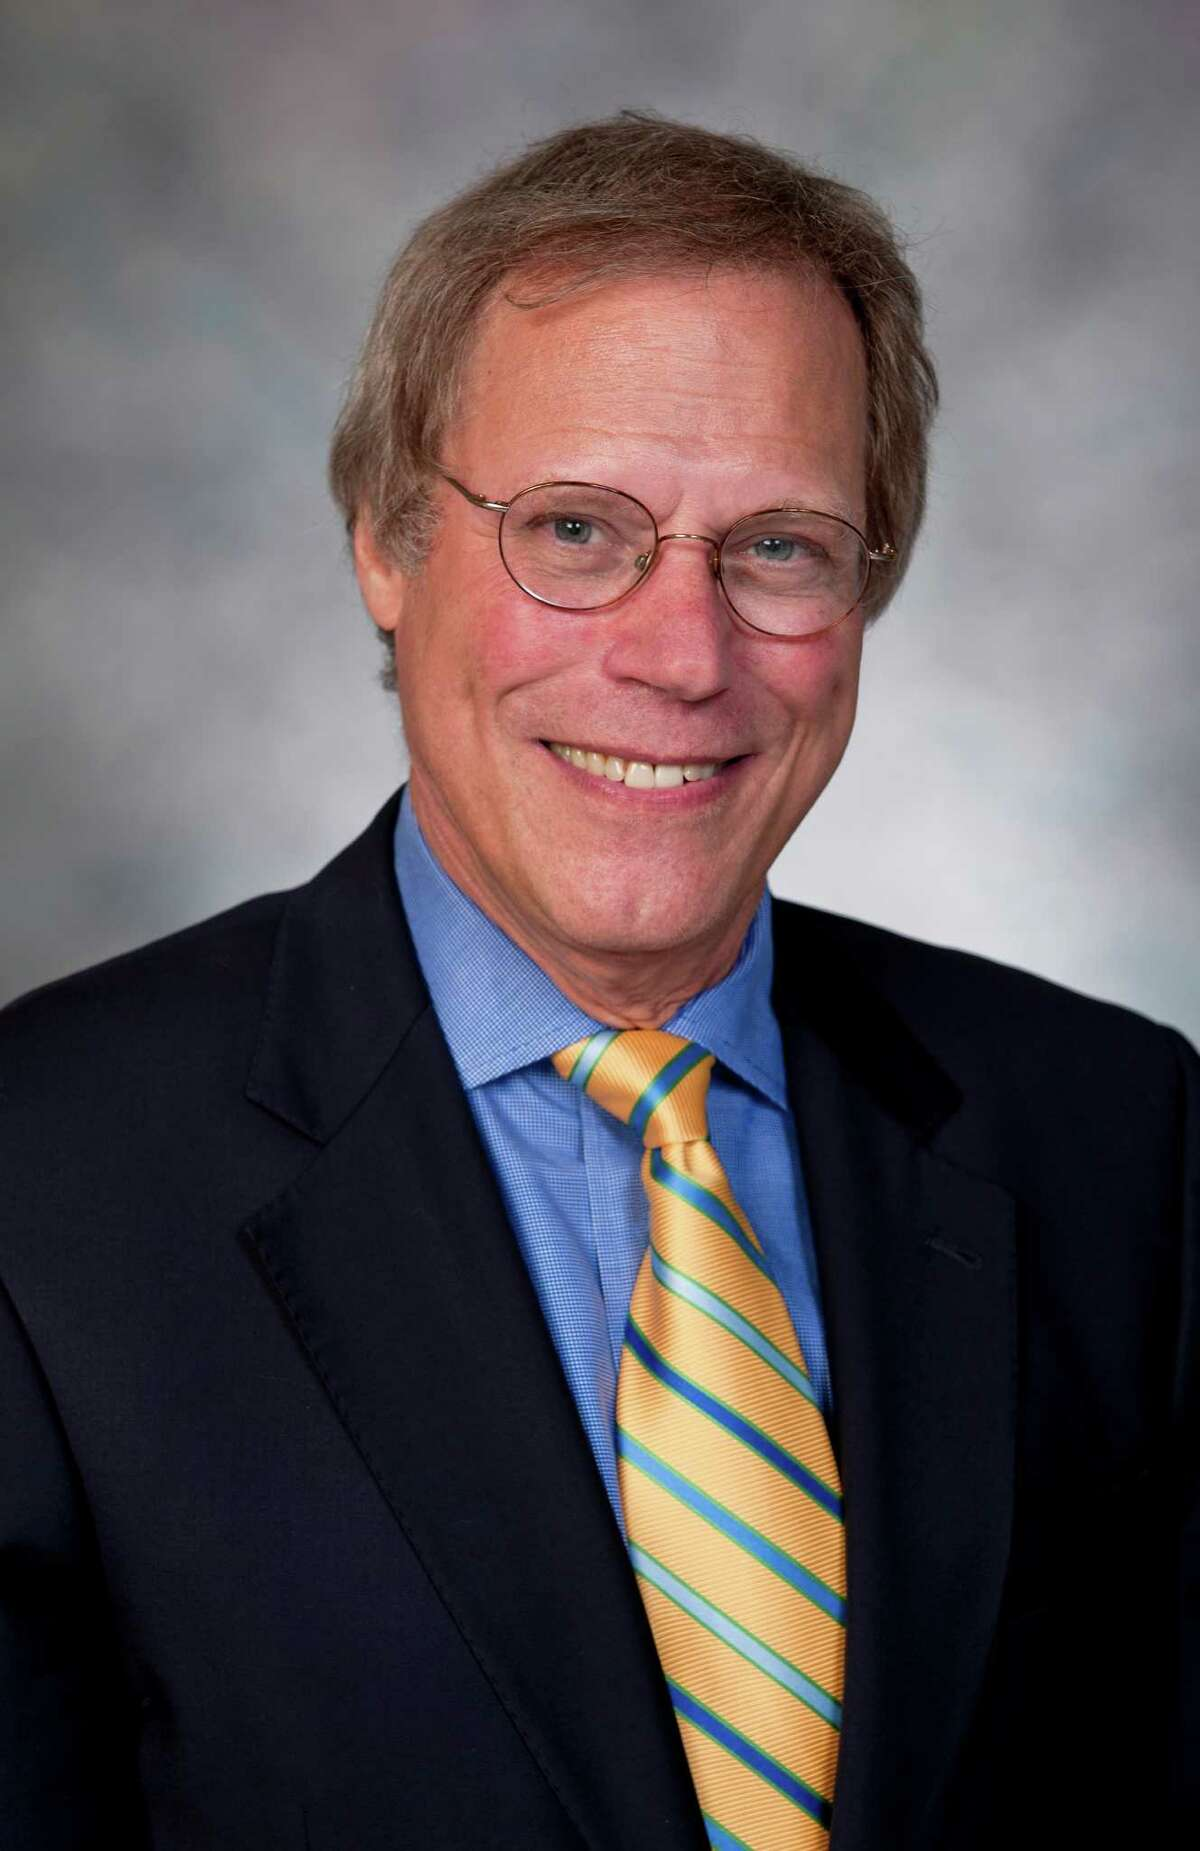 Dr. Stephen Klineberg, co-director of the Kinder Institute for Urban Research at Rice University.